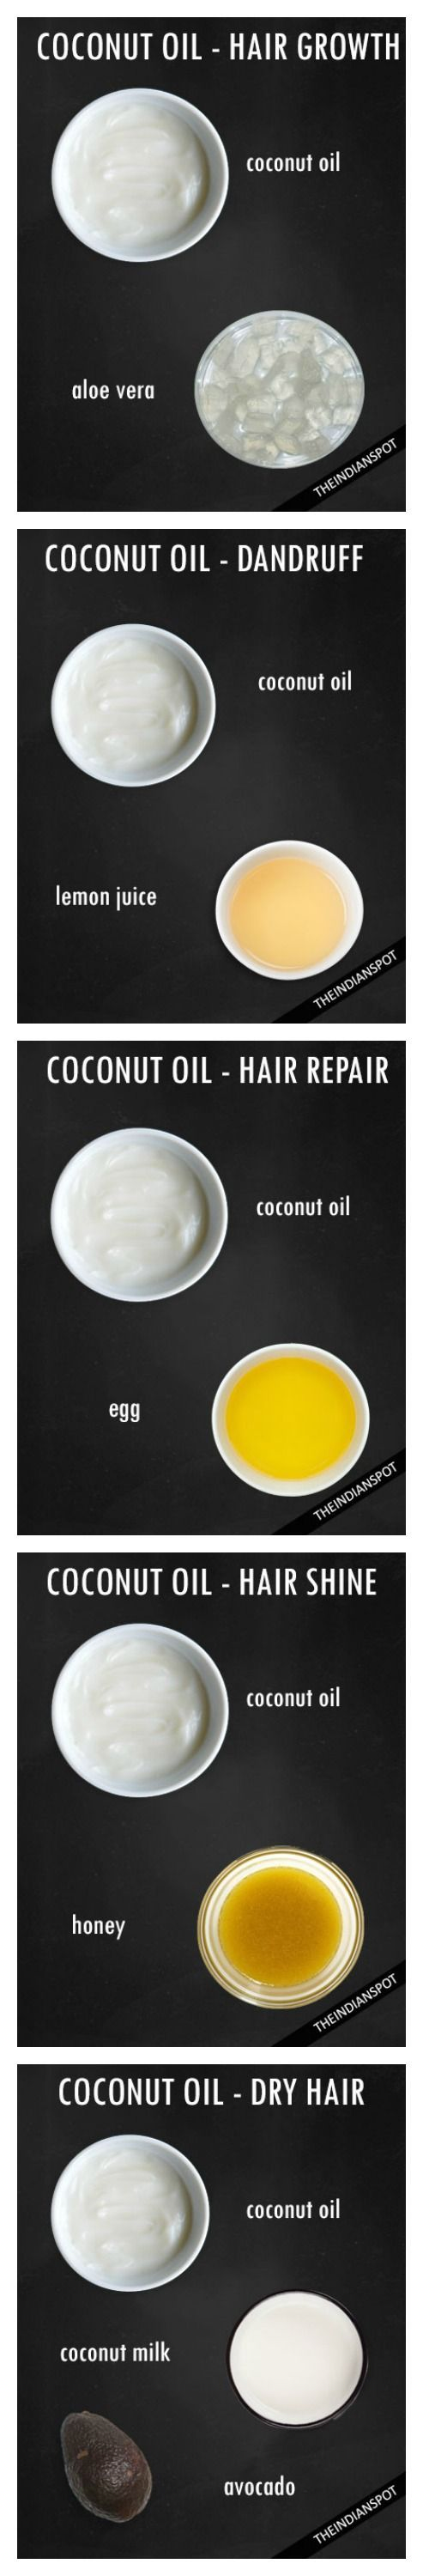 Coconut oil for your hair - Your online beauty store.